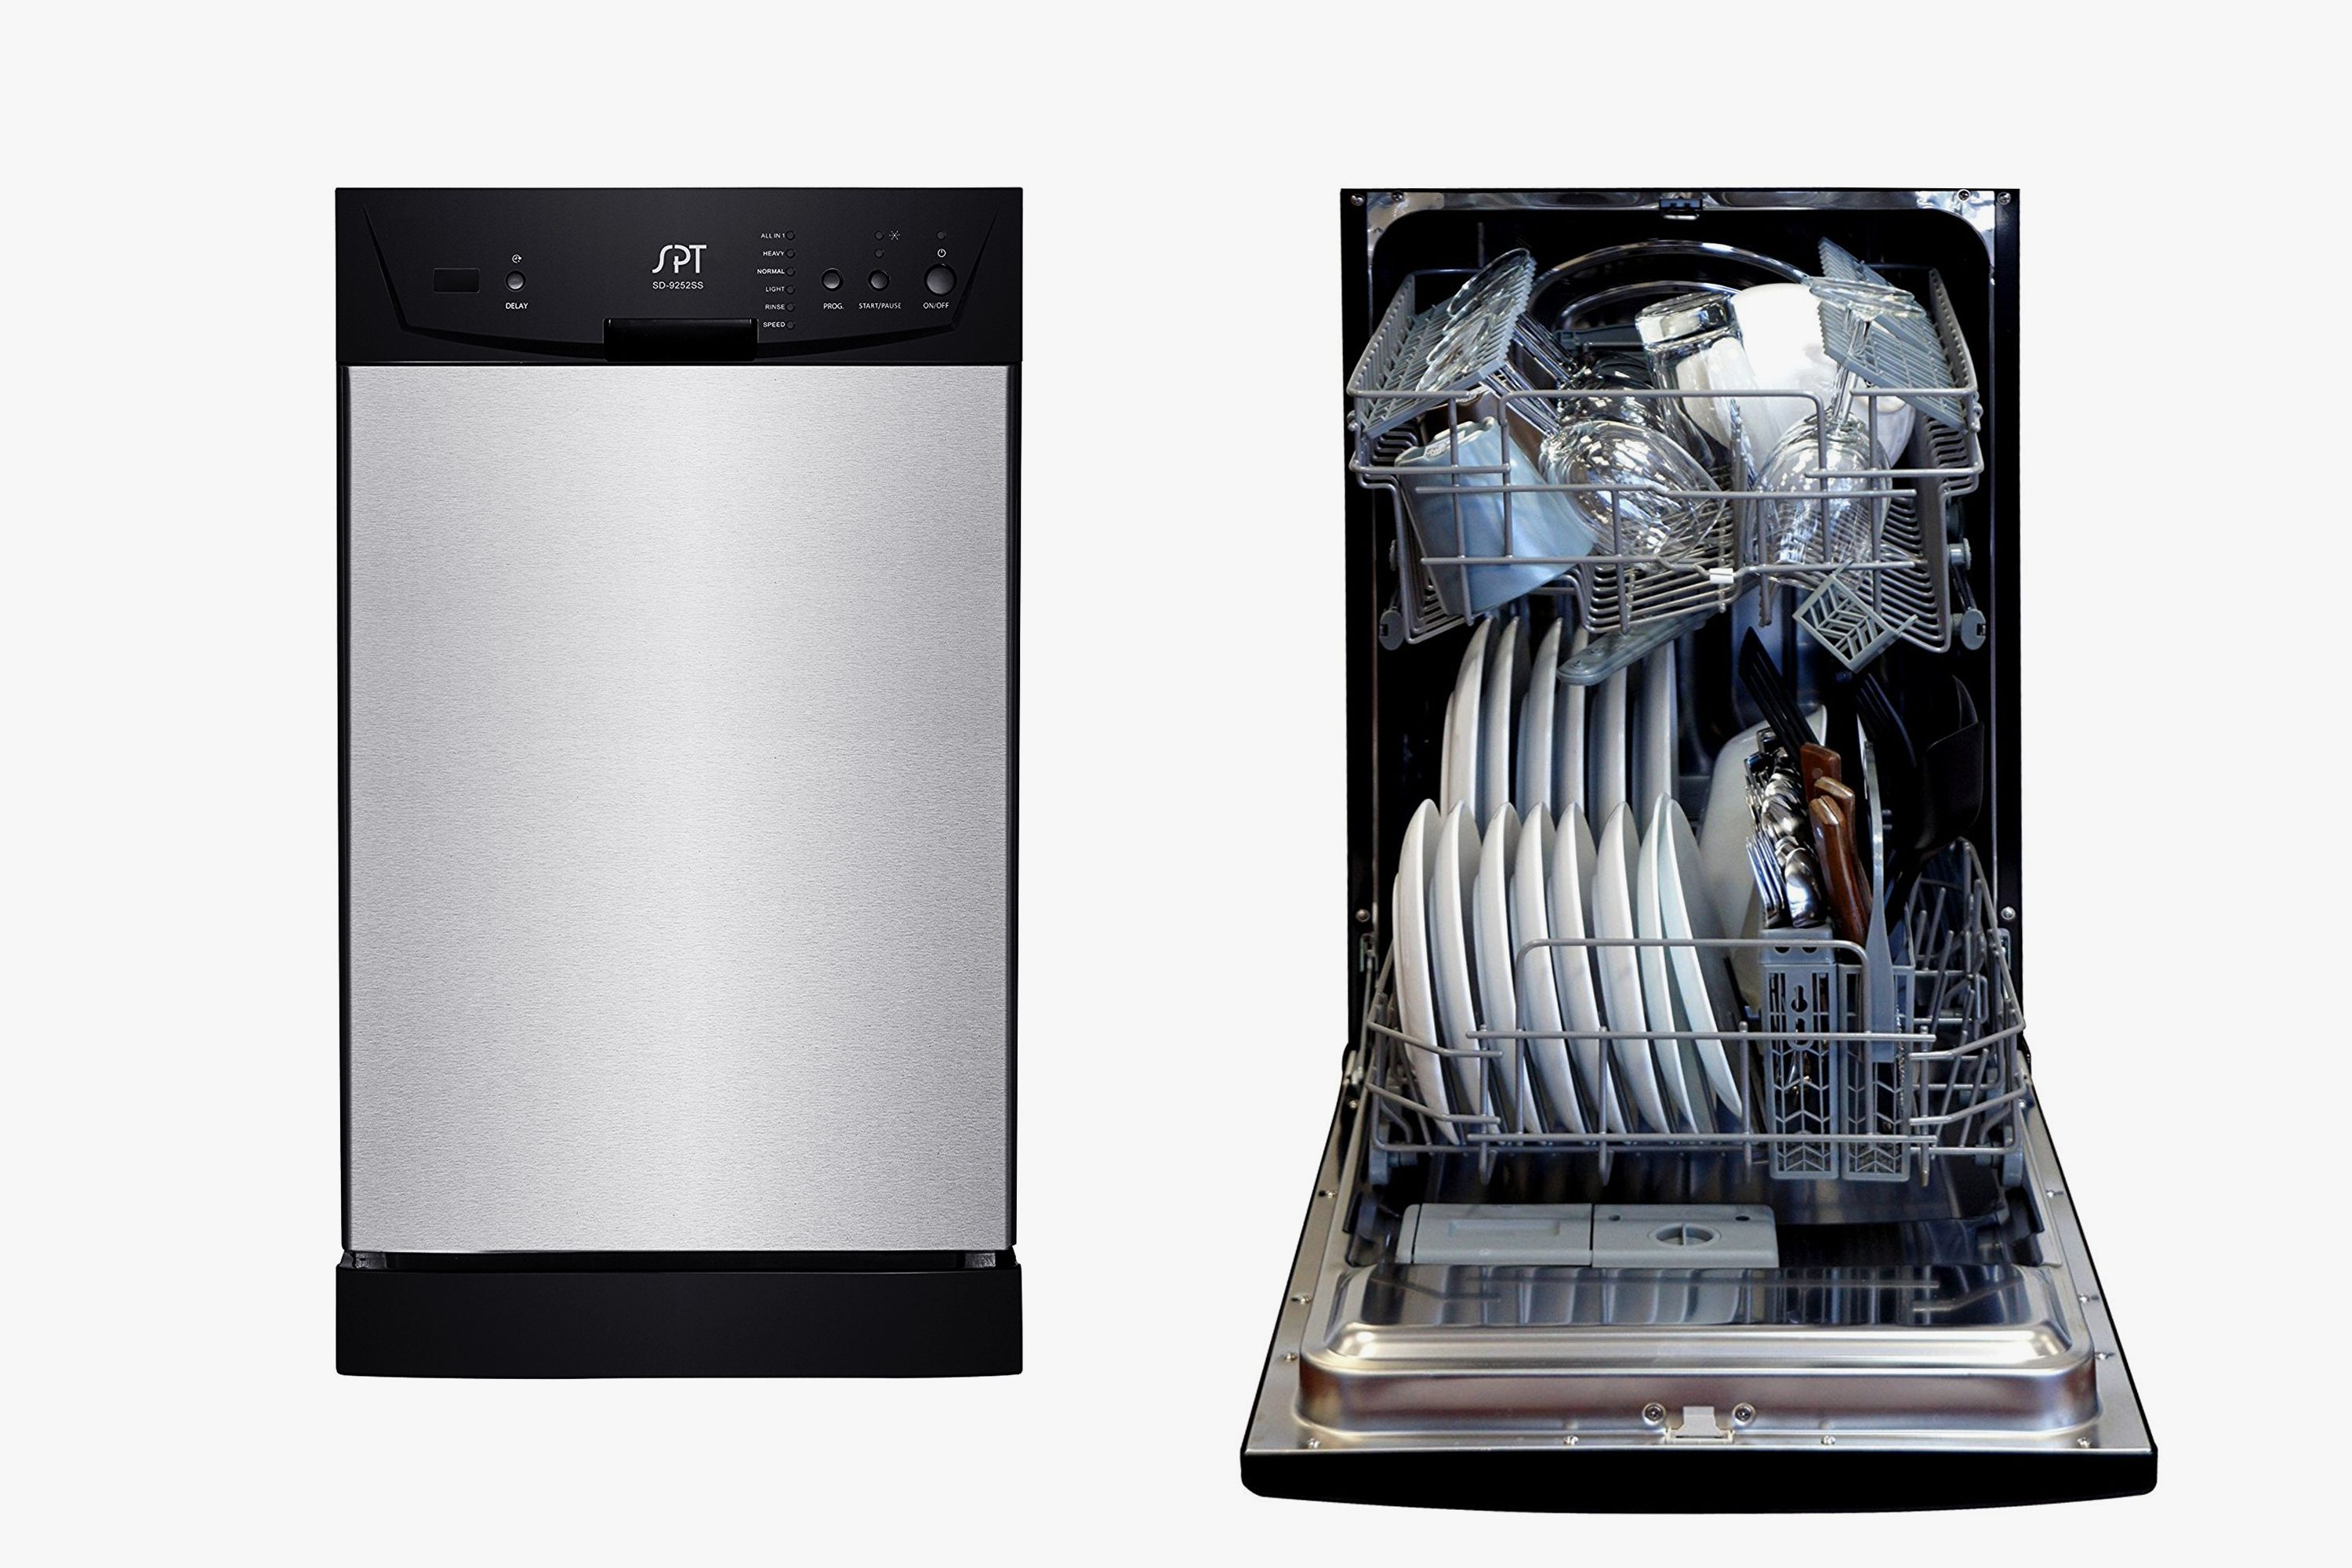 SPT SD 9241 Portable Dishwasher